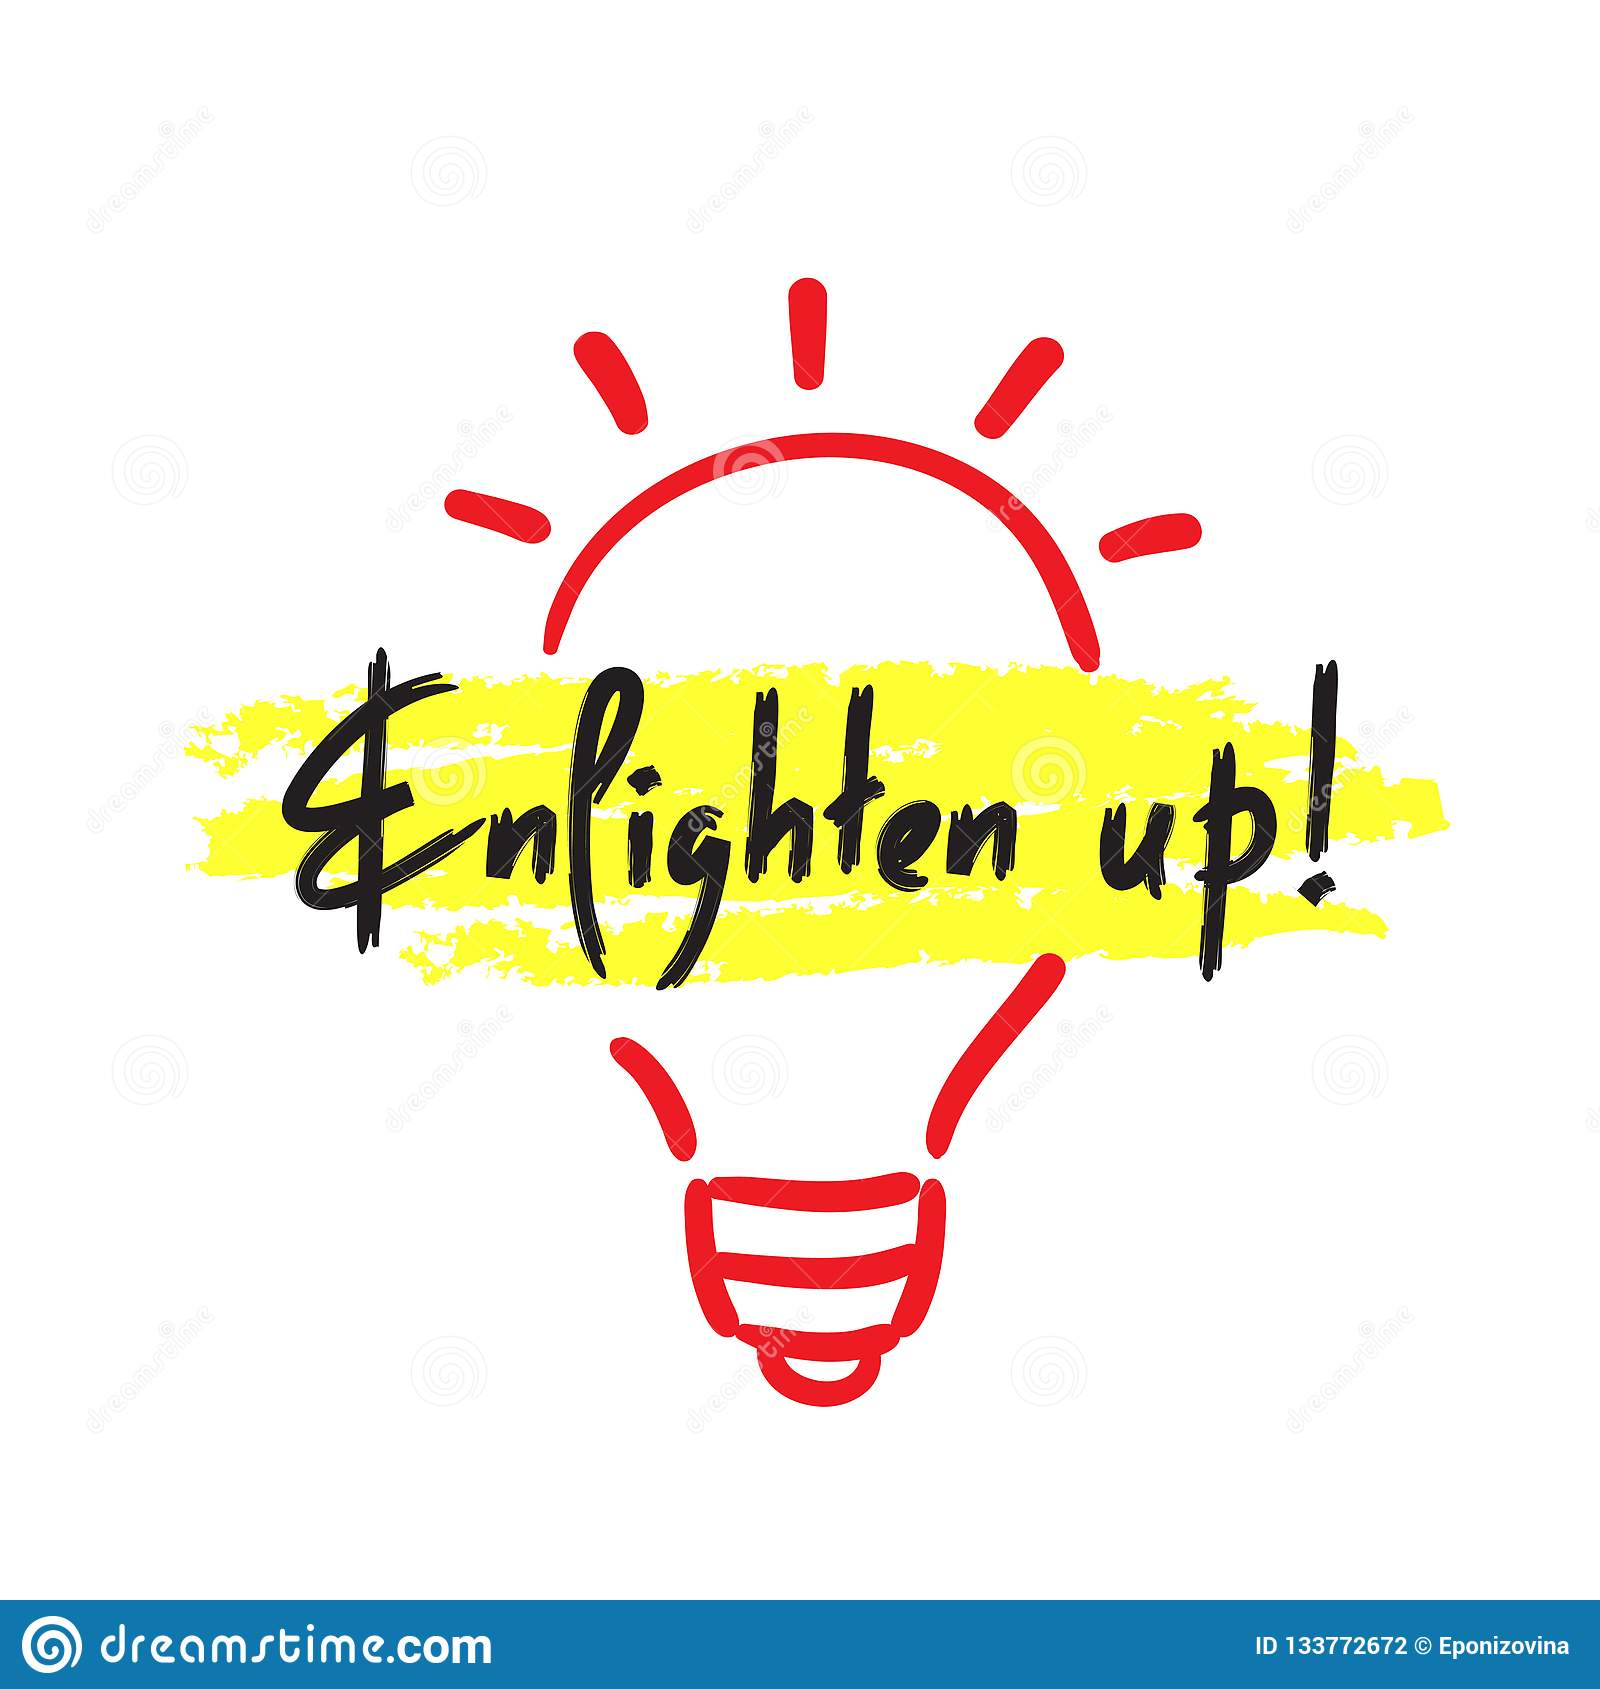 Enlighten up - simple inspire and motivational quote. English idiom, lettering. Print for inspirational poster, t-shirt